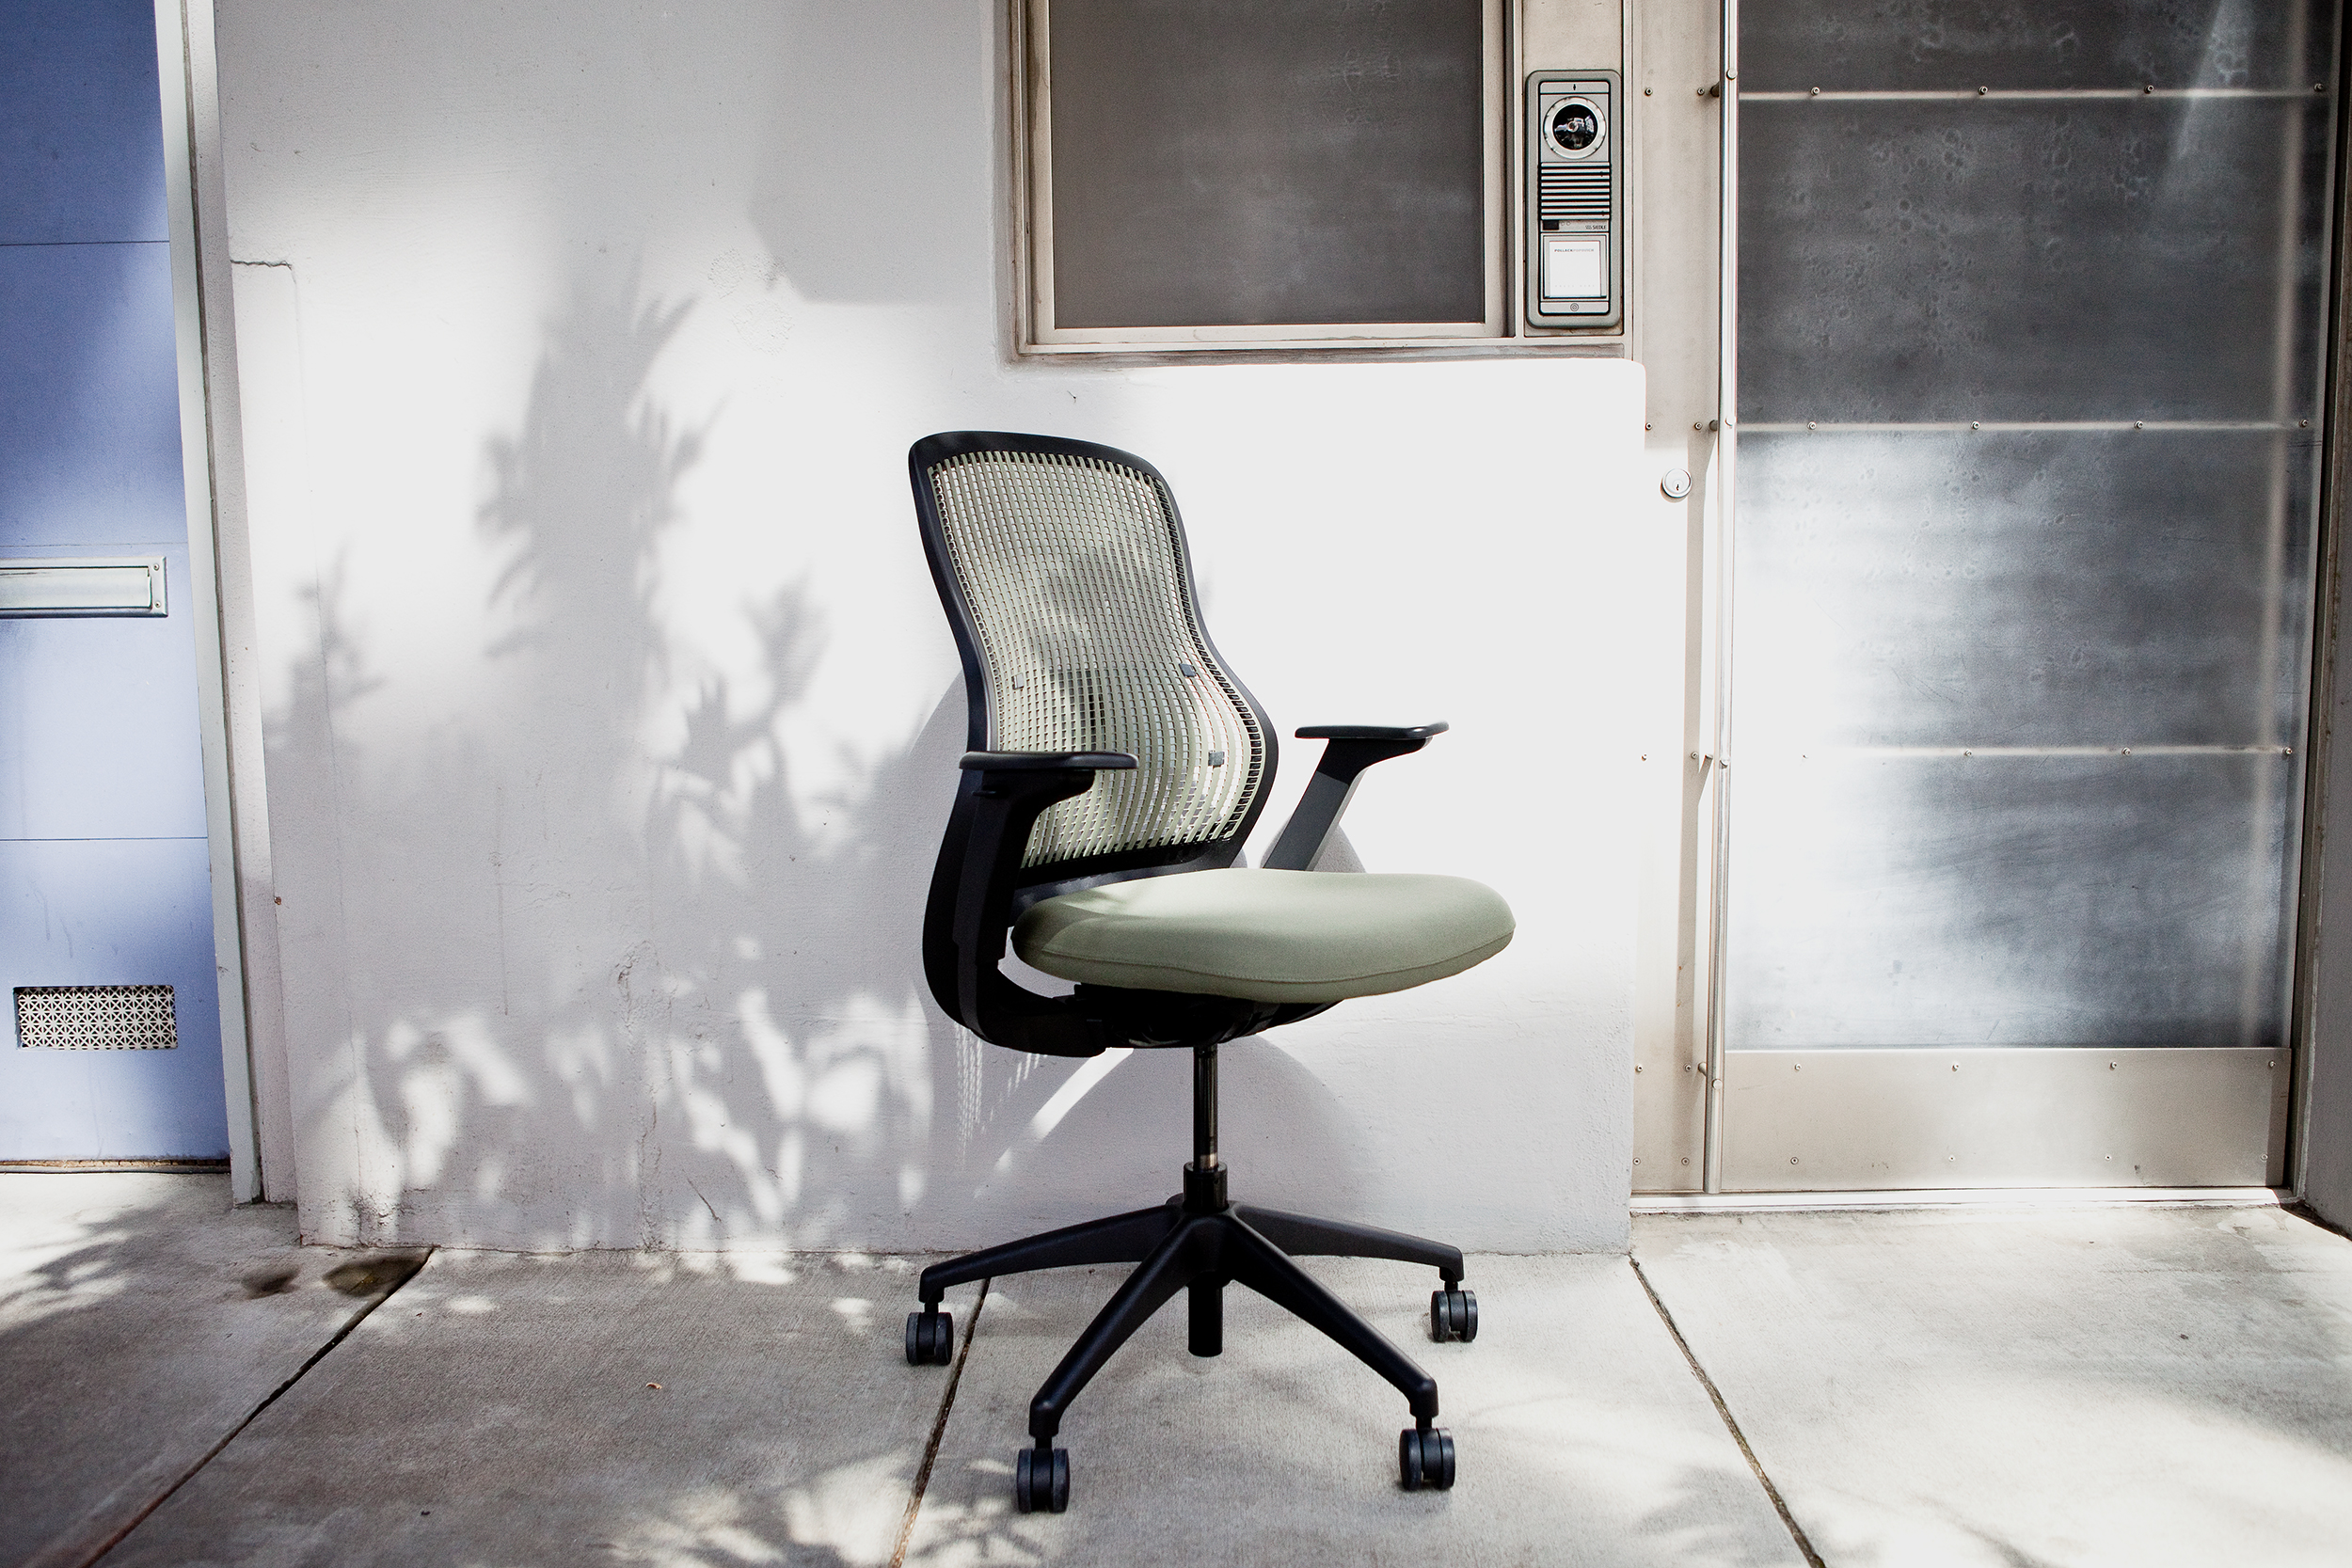 knoll office chair parts antique dining chairs uk annecaraway review regeneration desk